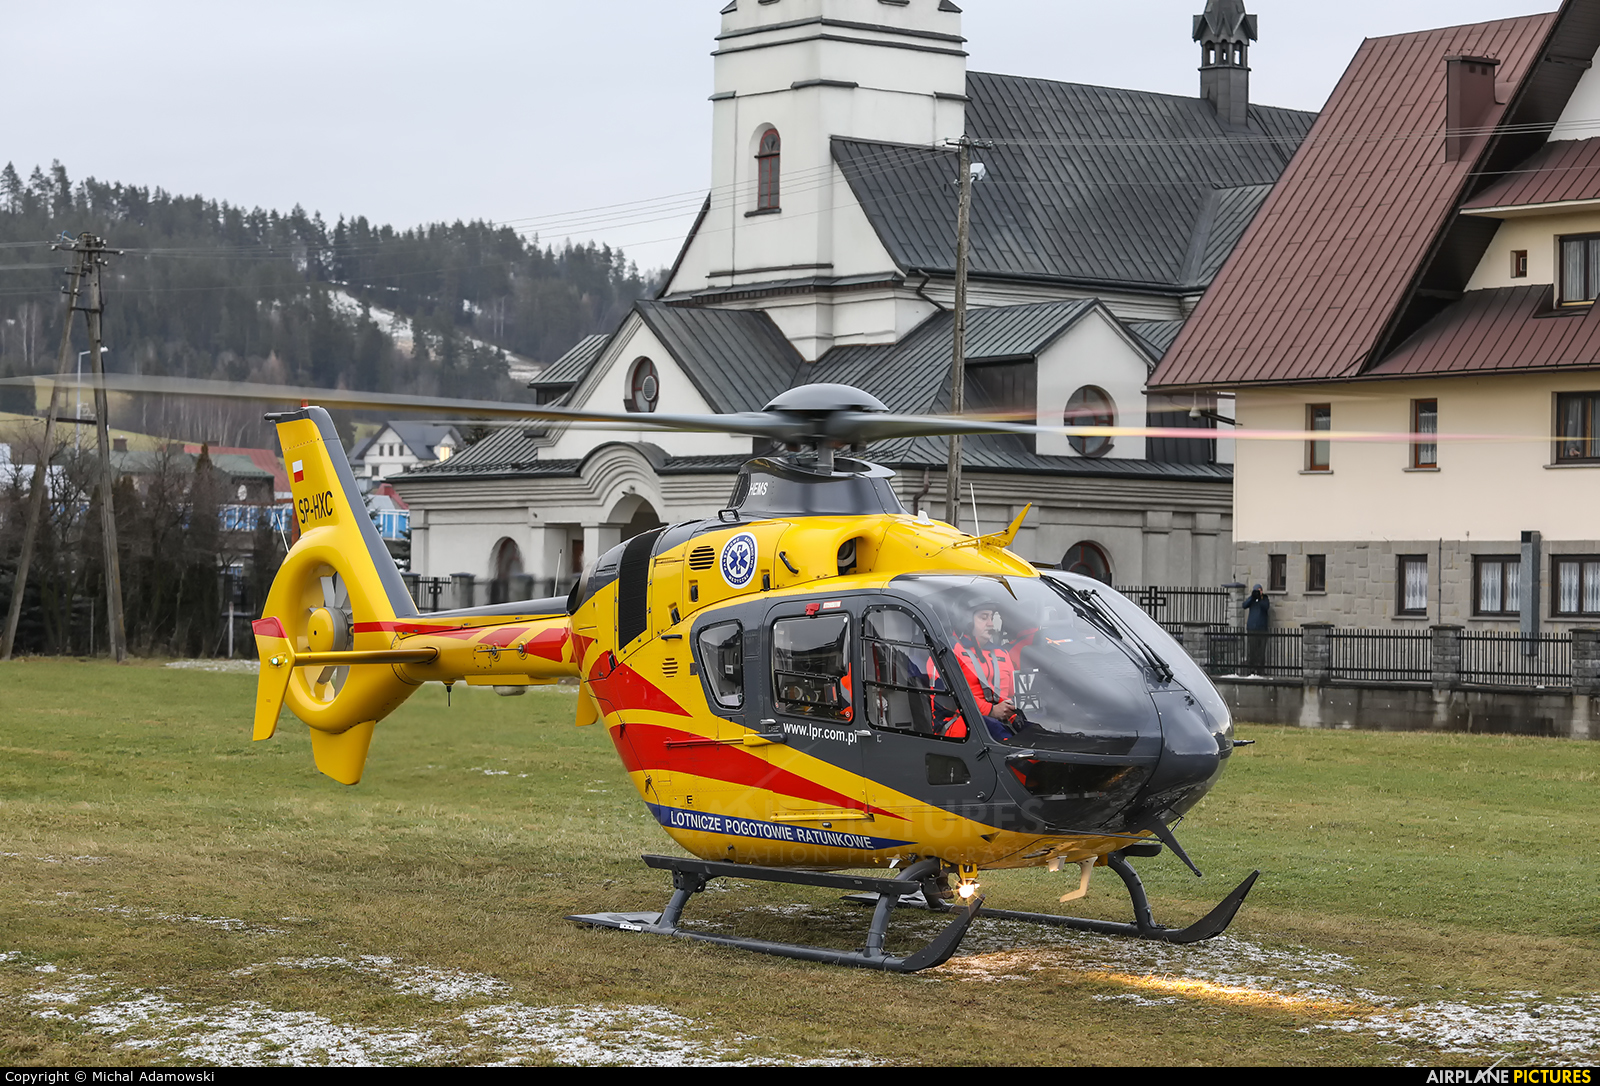 Polish Medical Air Rescue - Lotnicze Pogotowie Ratunkowe SP-HXC aircraft at Off Airport - Poland